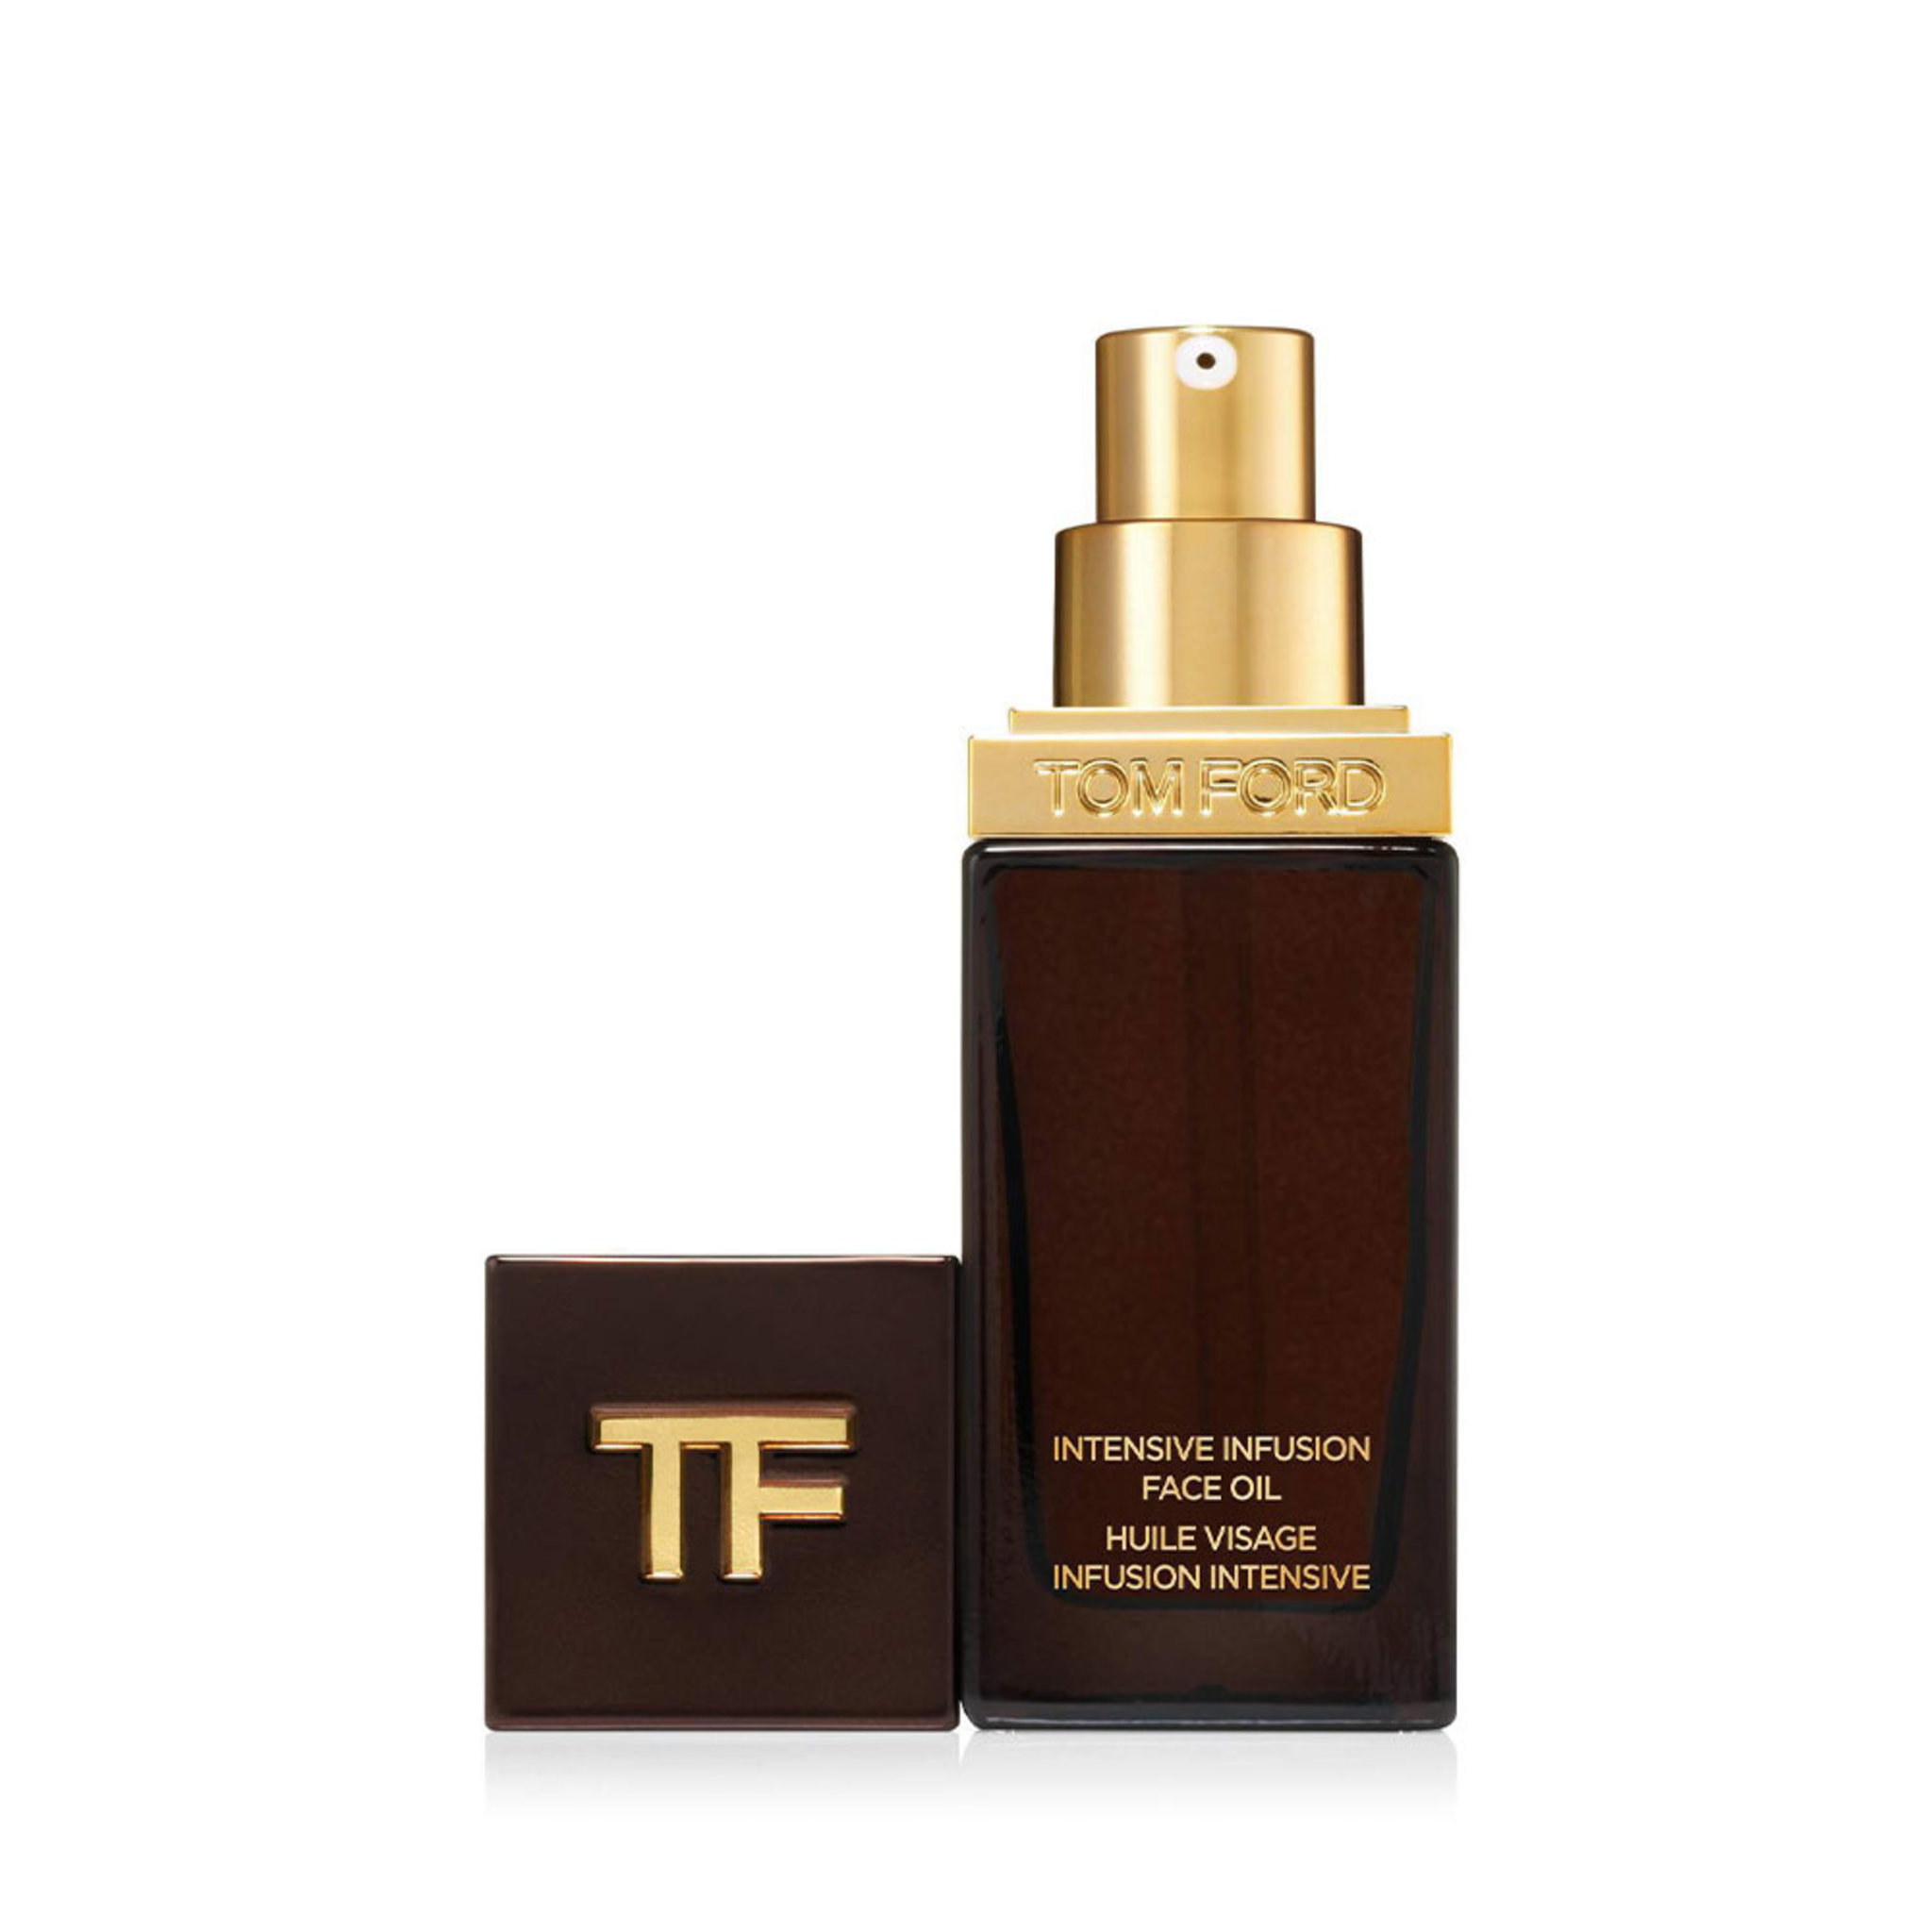 Intensive Infusion Face Oil, 30 ML